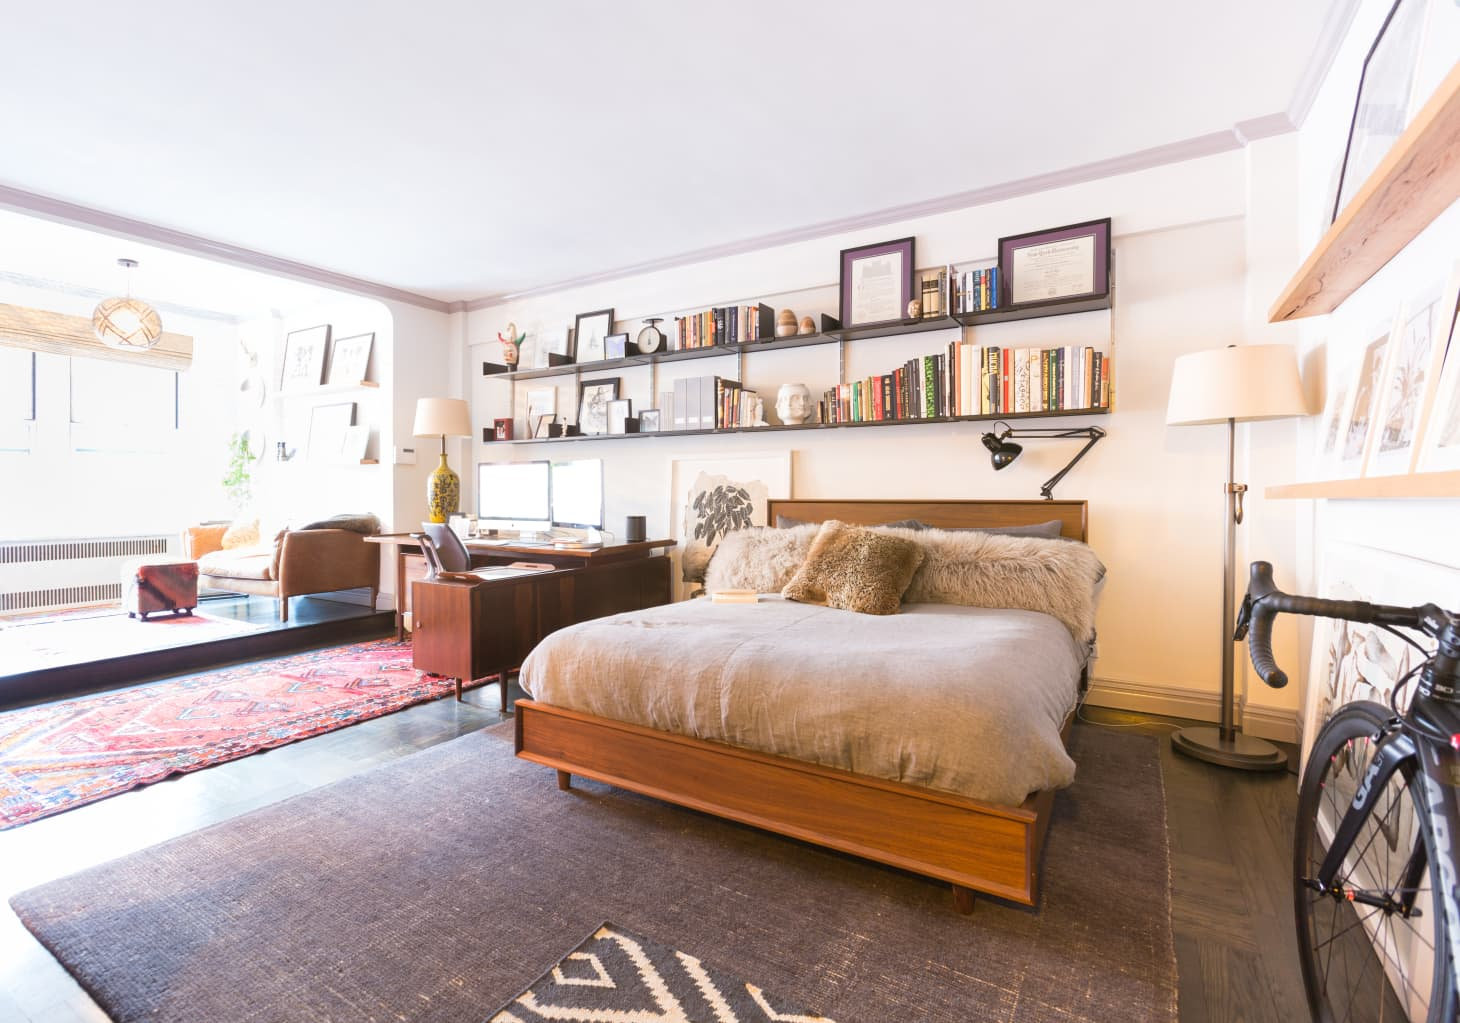 Studio Apartment Layouts Advice and Inspiration | Apartment ...